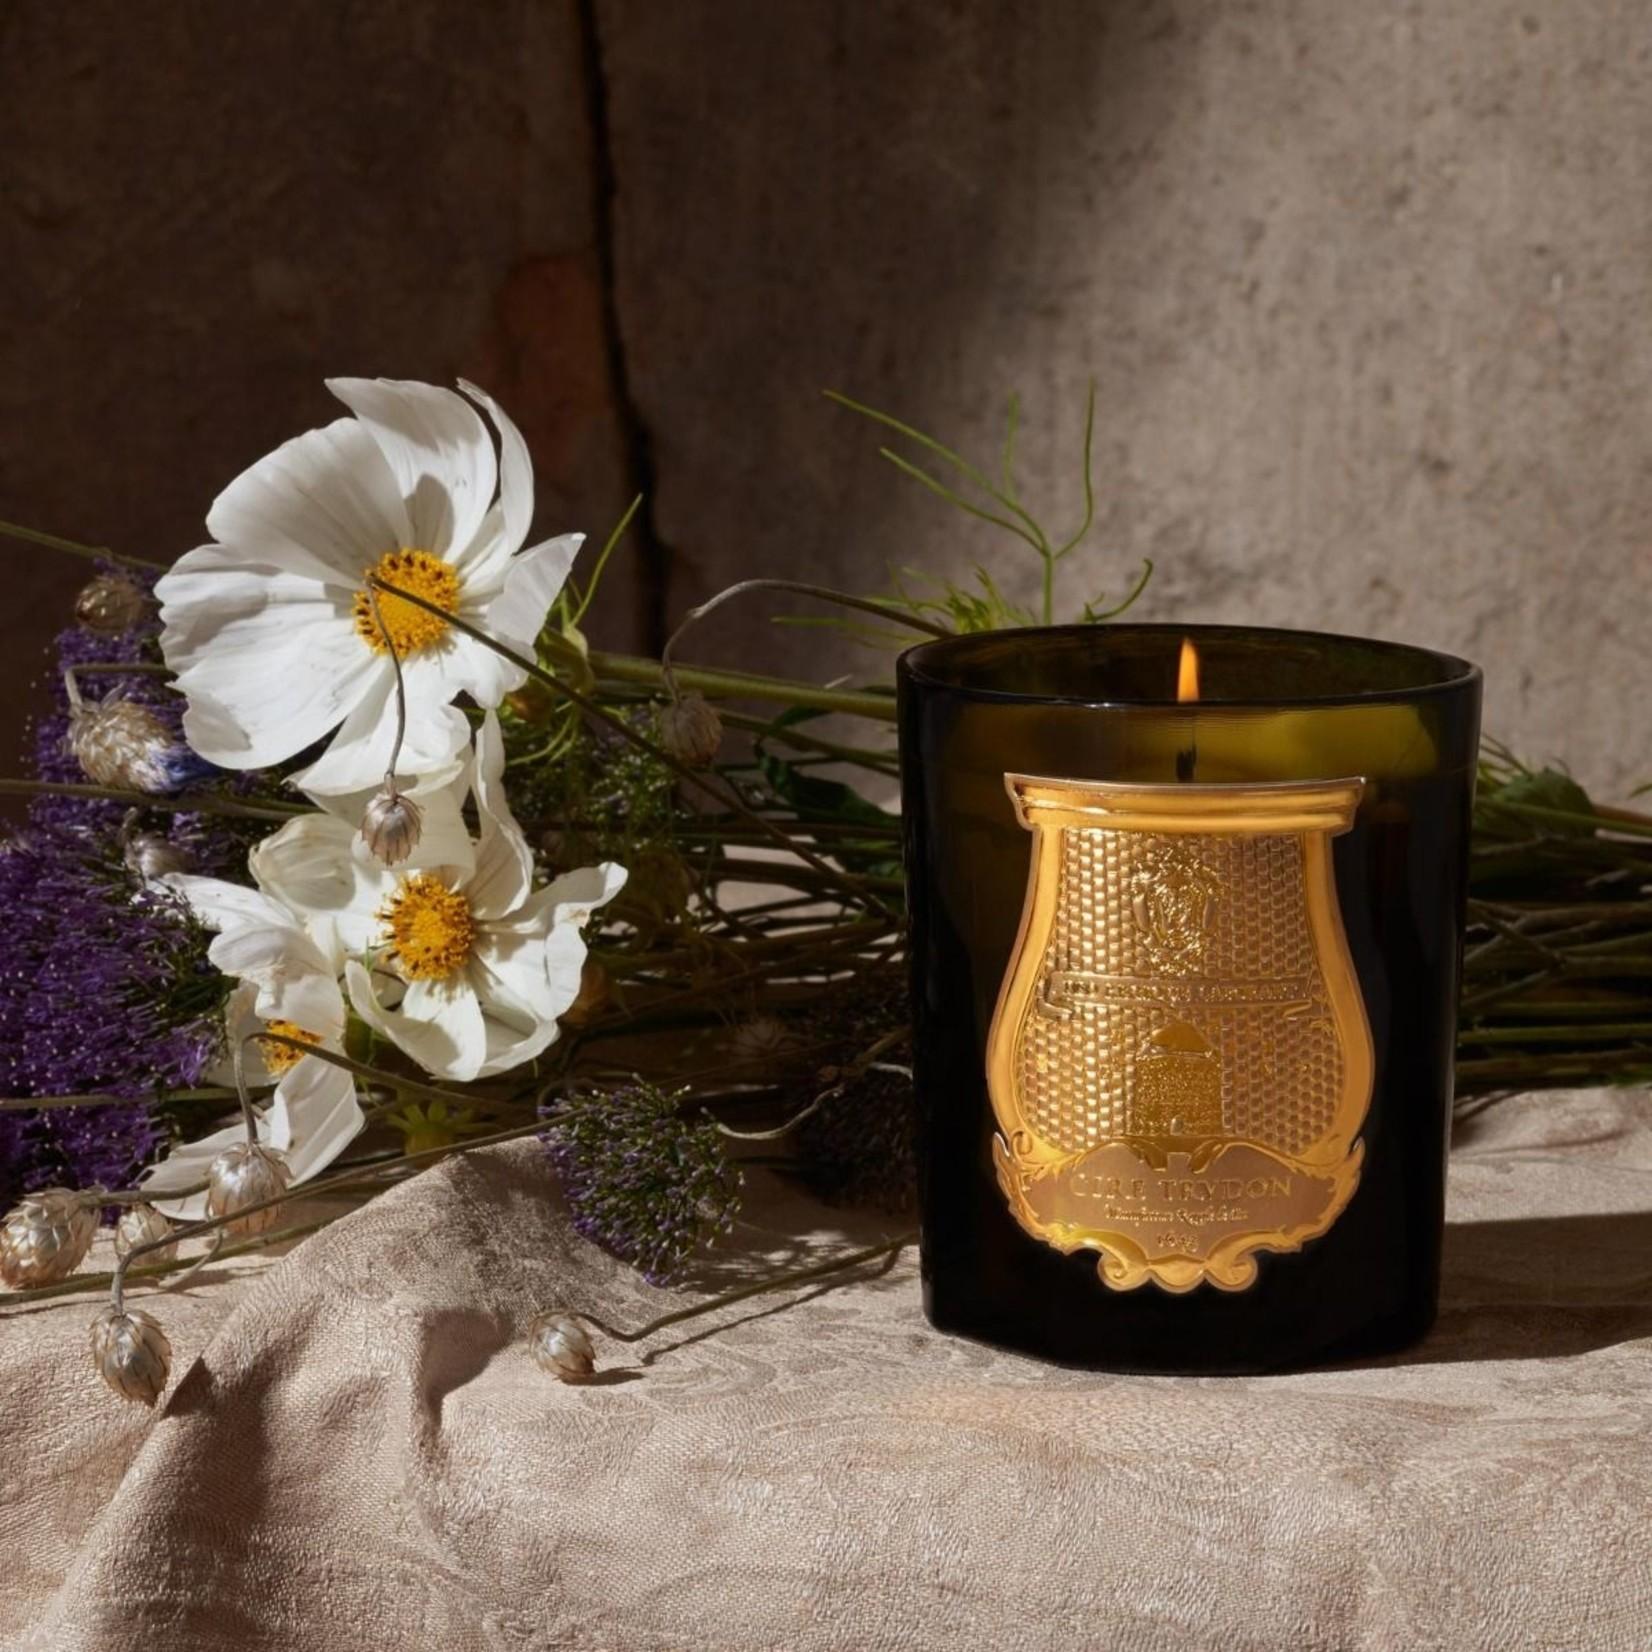 Trudon Cyrnos Candle — Classic